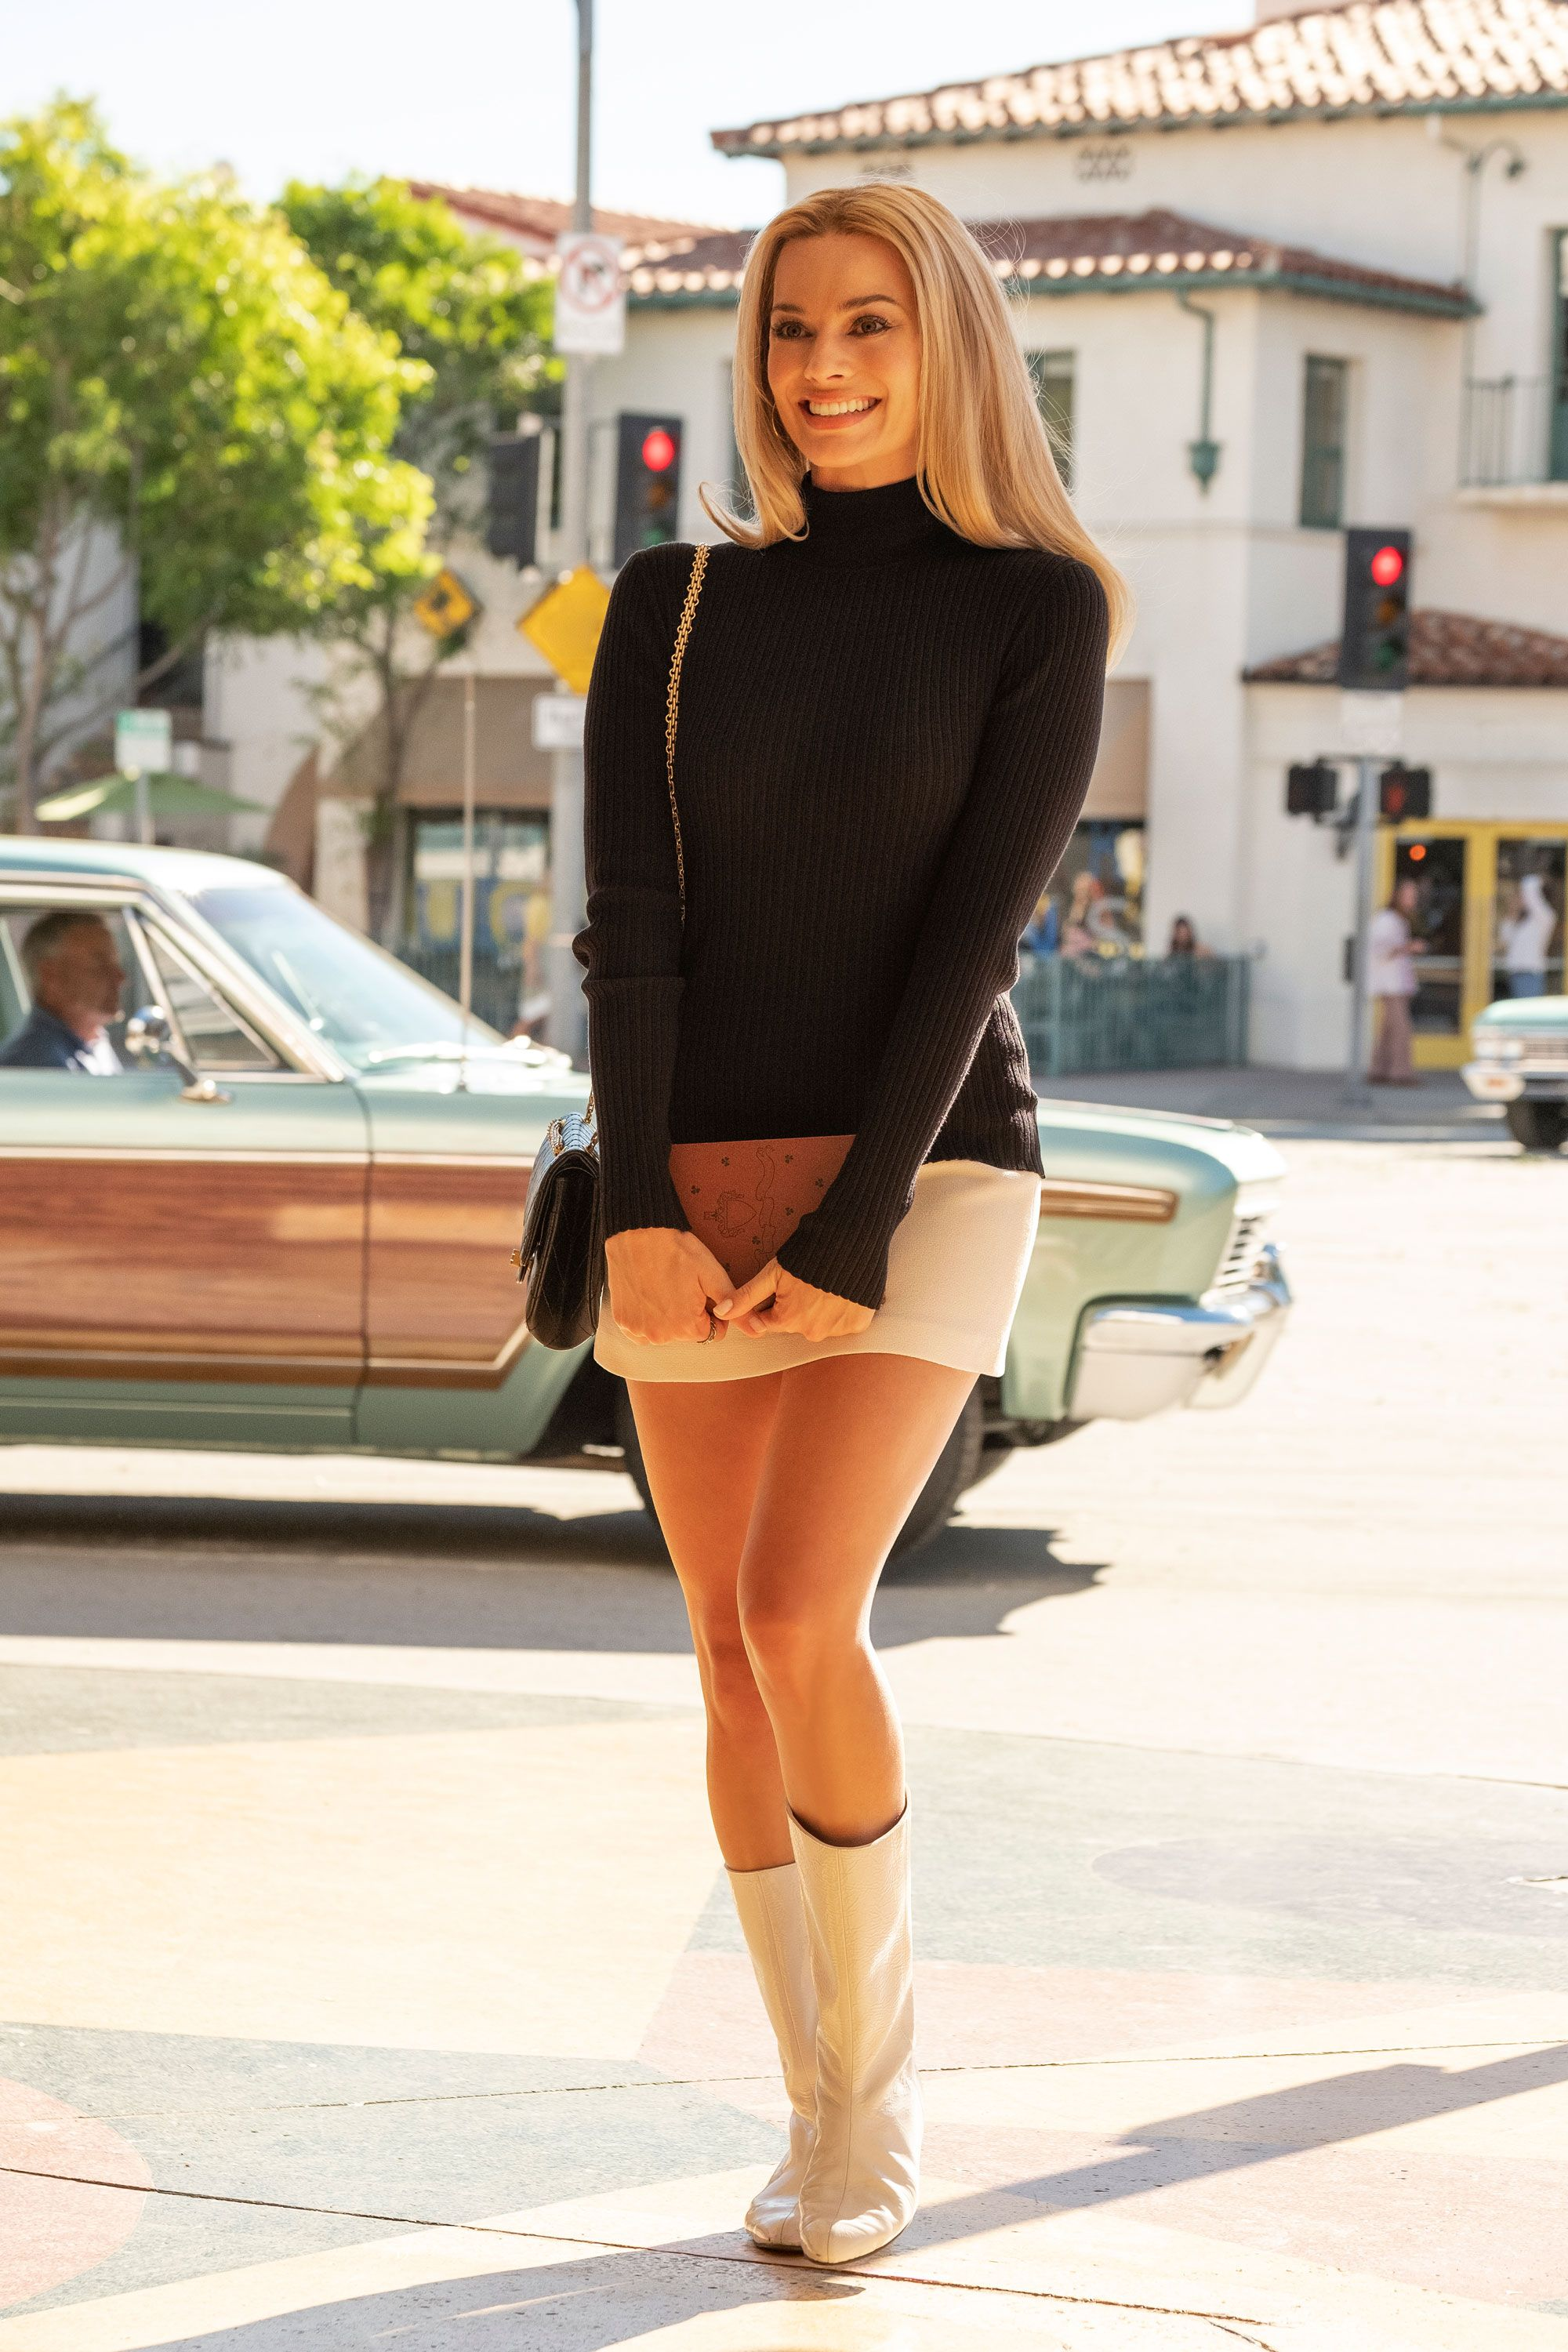 Image result for margot robbie once upon a time in hollywood